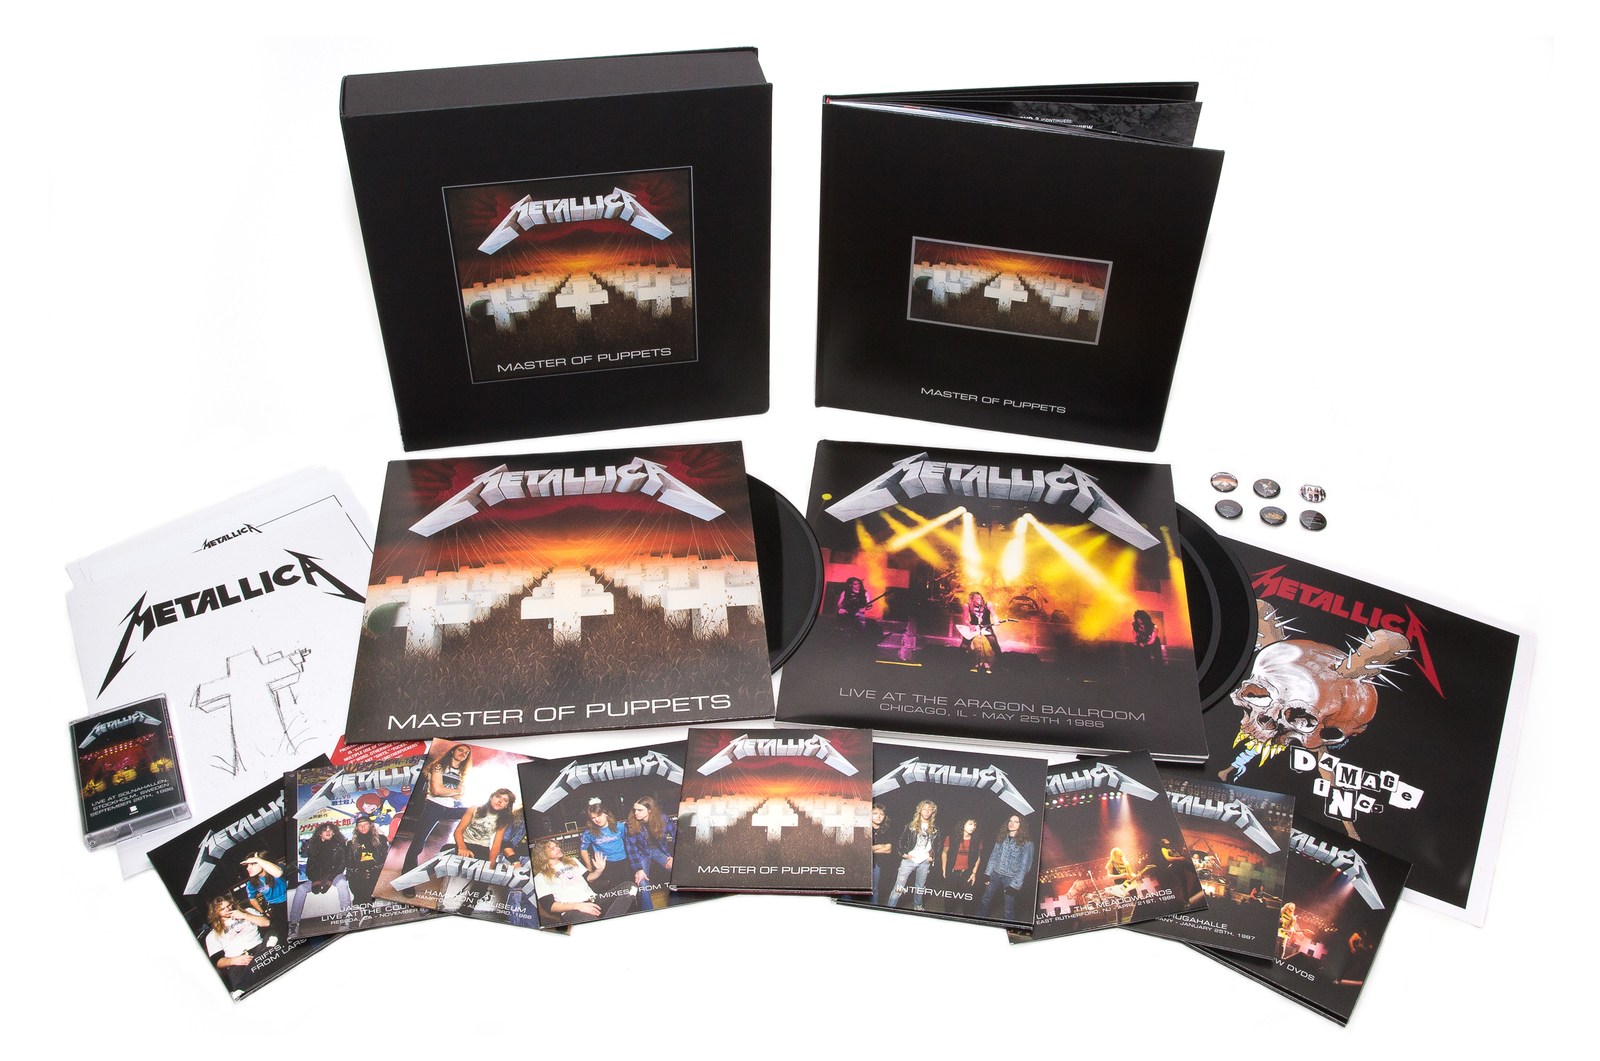 Master of Puppets [Deluxe Box Set] (2xLP, 10xCD, 2xDVD & 1 cassette) by Metallica image